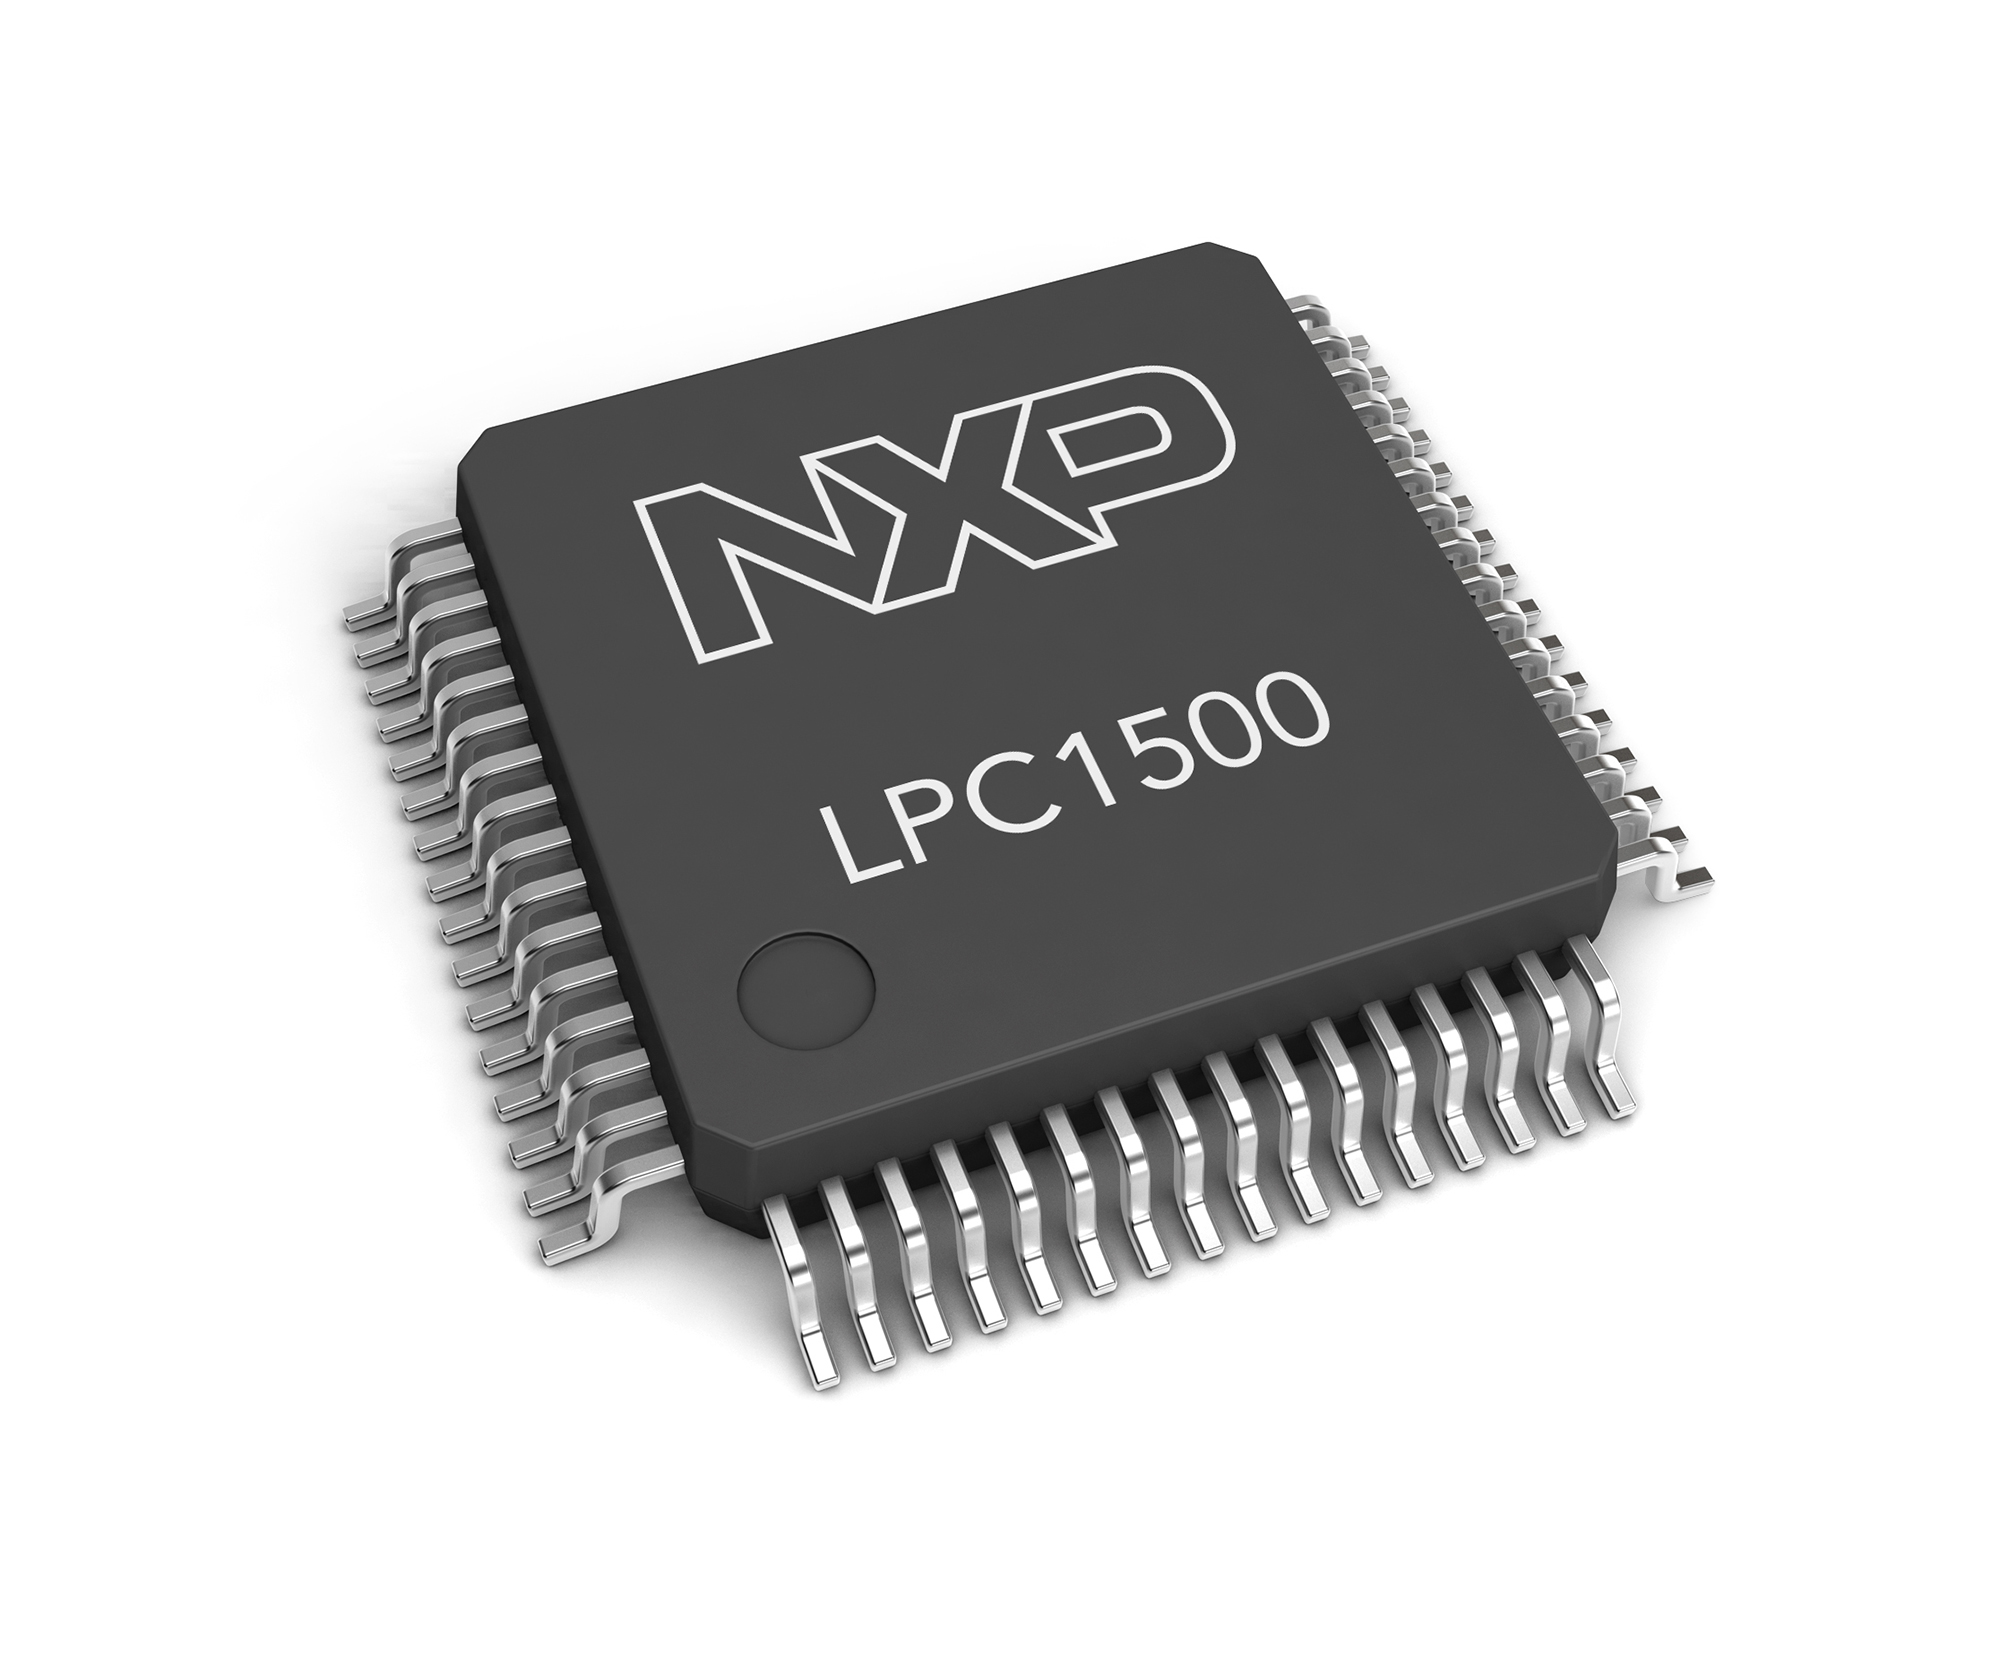 Figure 1 - NXP's LCP1500 series can control a variety of types of motor, including sensored and sensorless types. This series is optimised for brushless DC (BLDC) and permanent-magnet synchronous motors (PMSMs), but it can also drive AC induction motors (ACIMs).